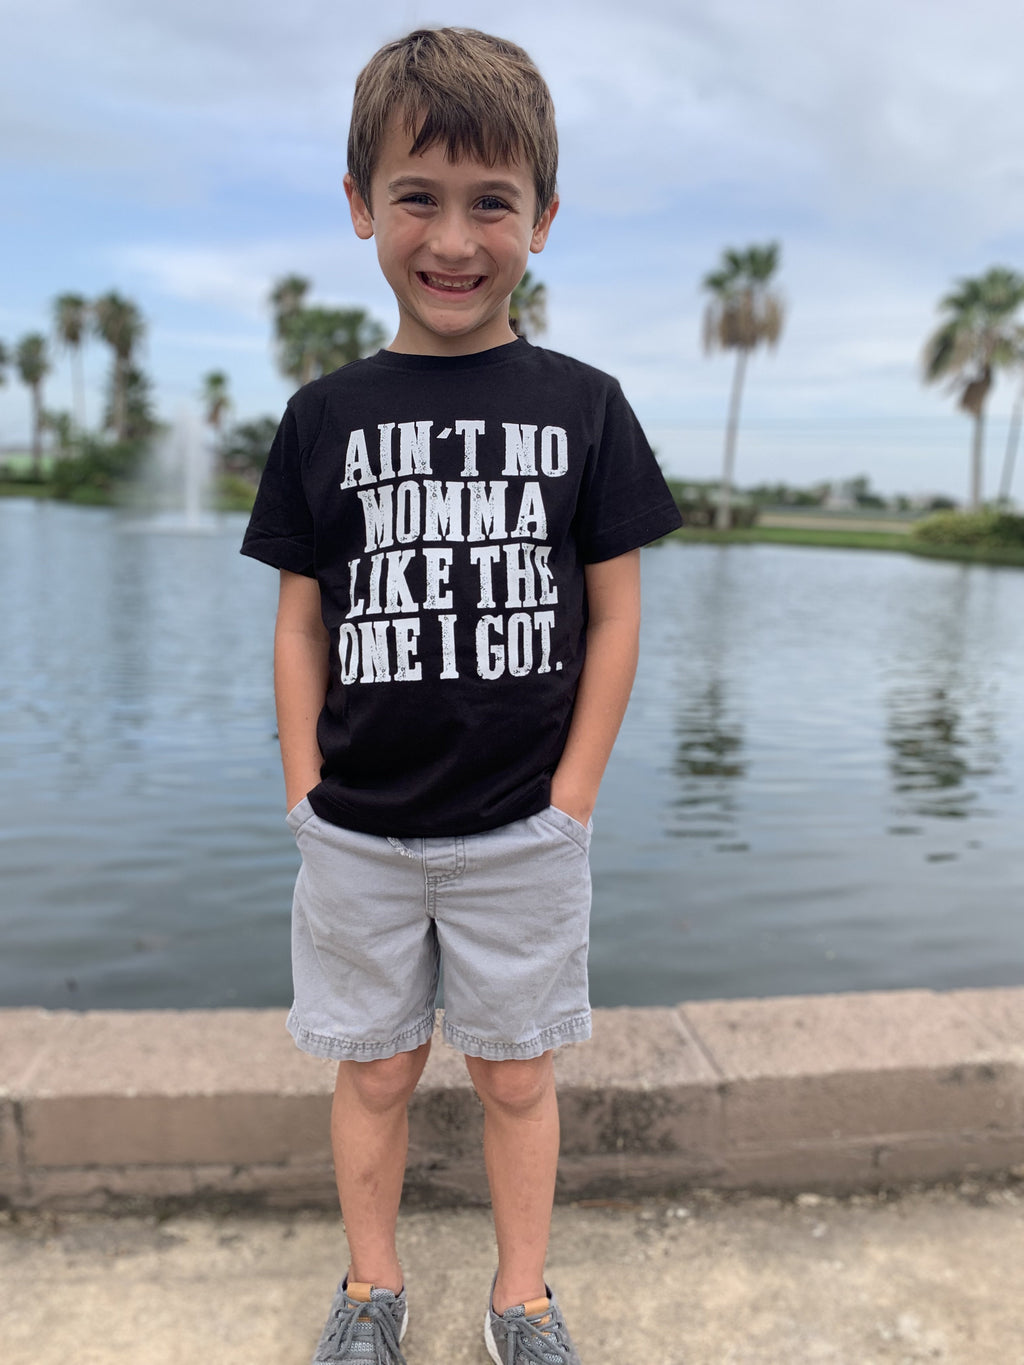 Aint No Momma Like the One I Got Kids T-shirt -  kiss-my-chic-boutique.myshopify.com